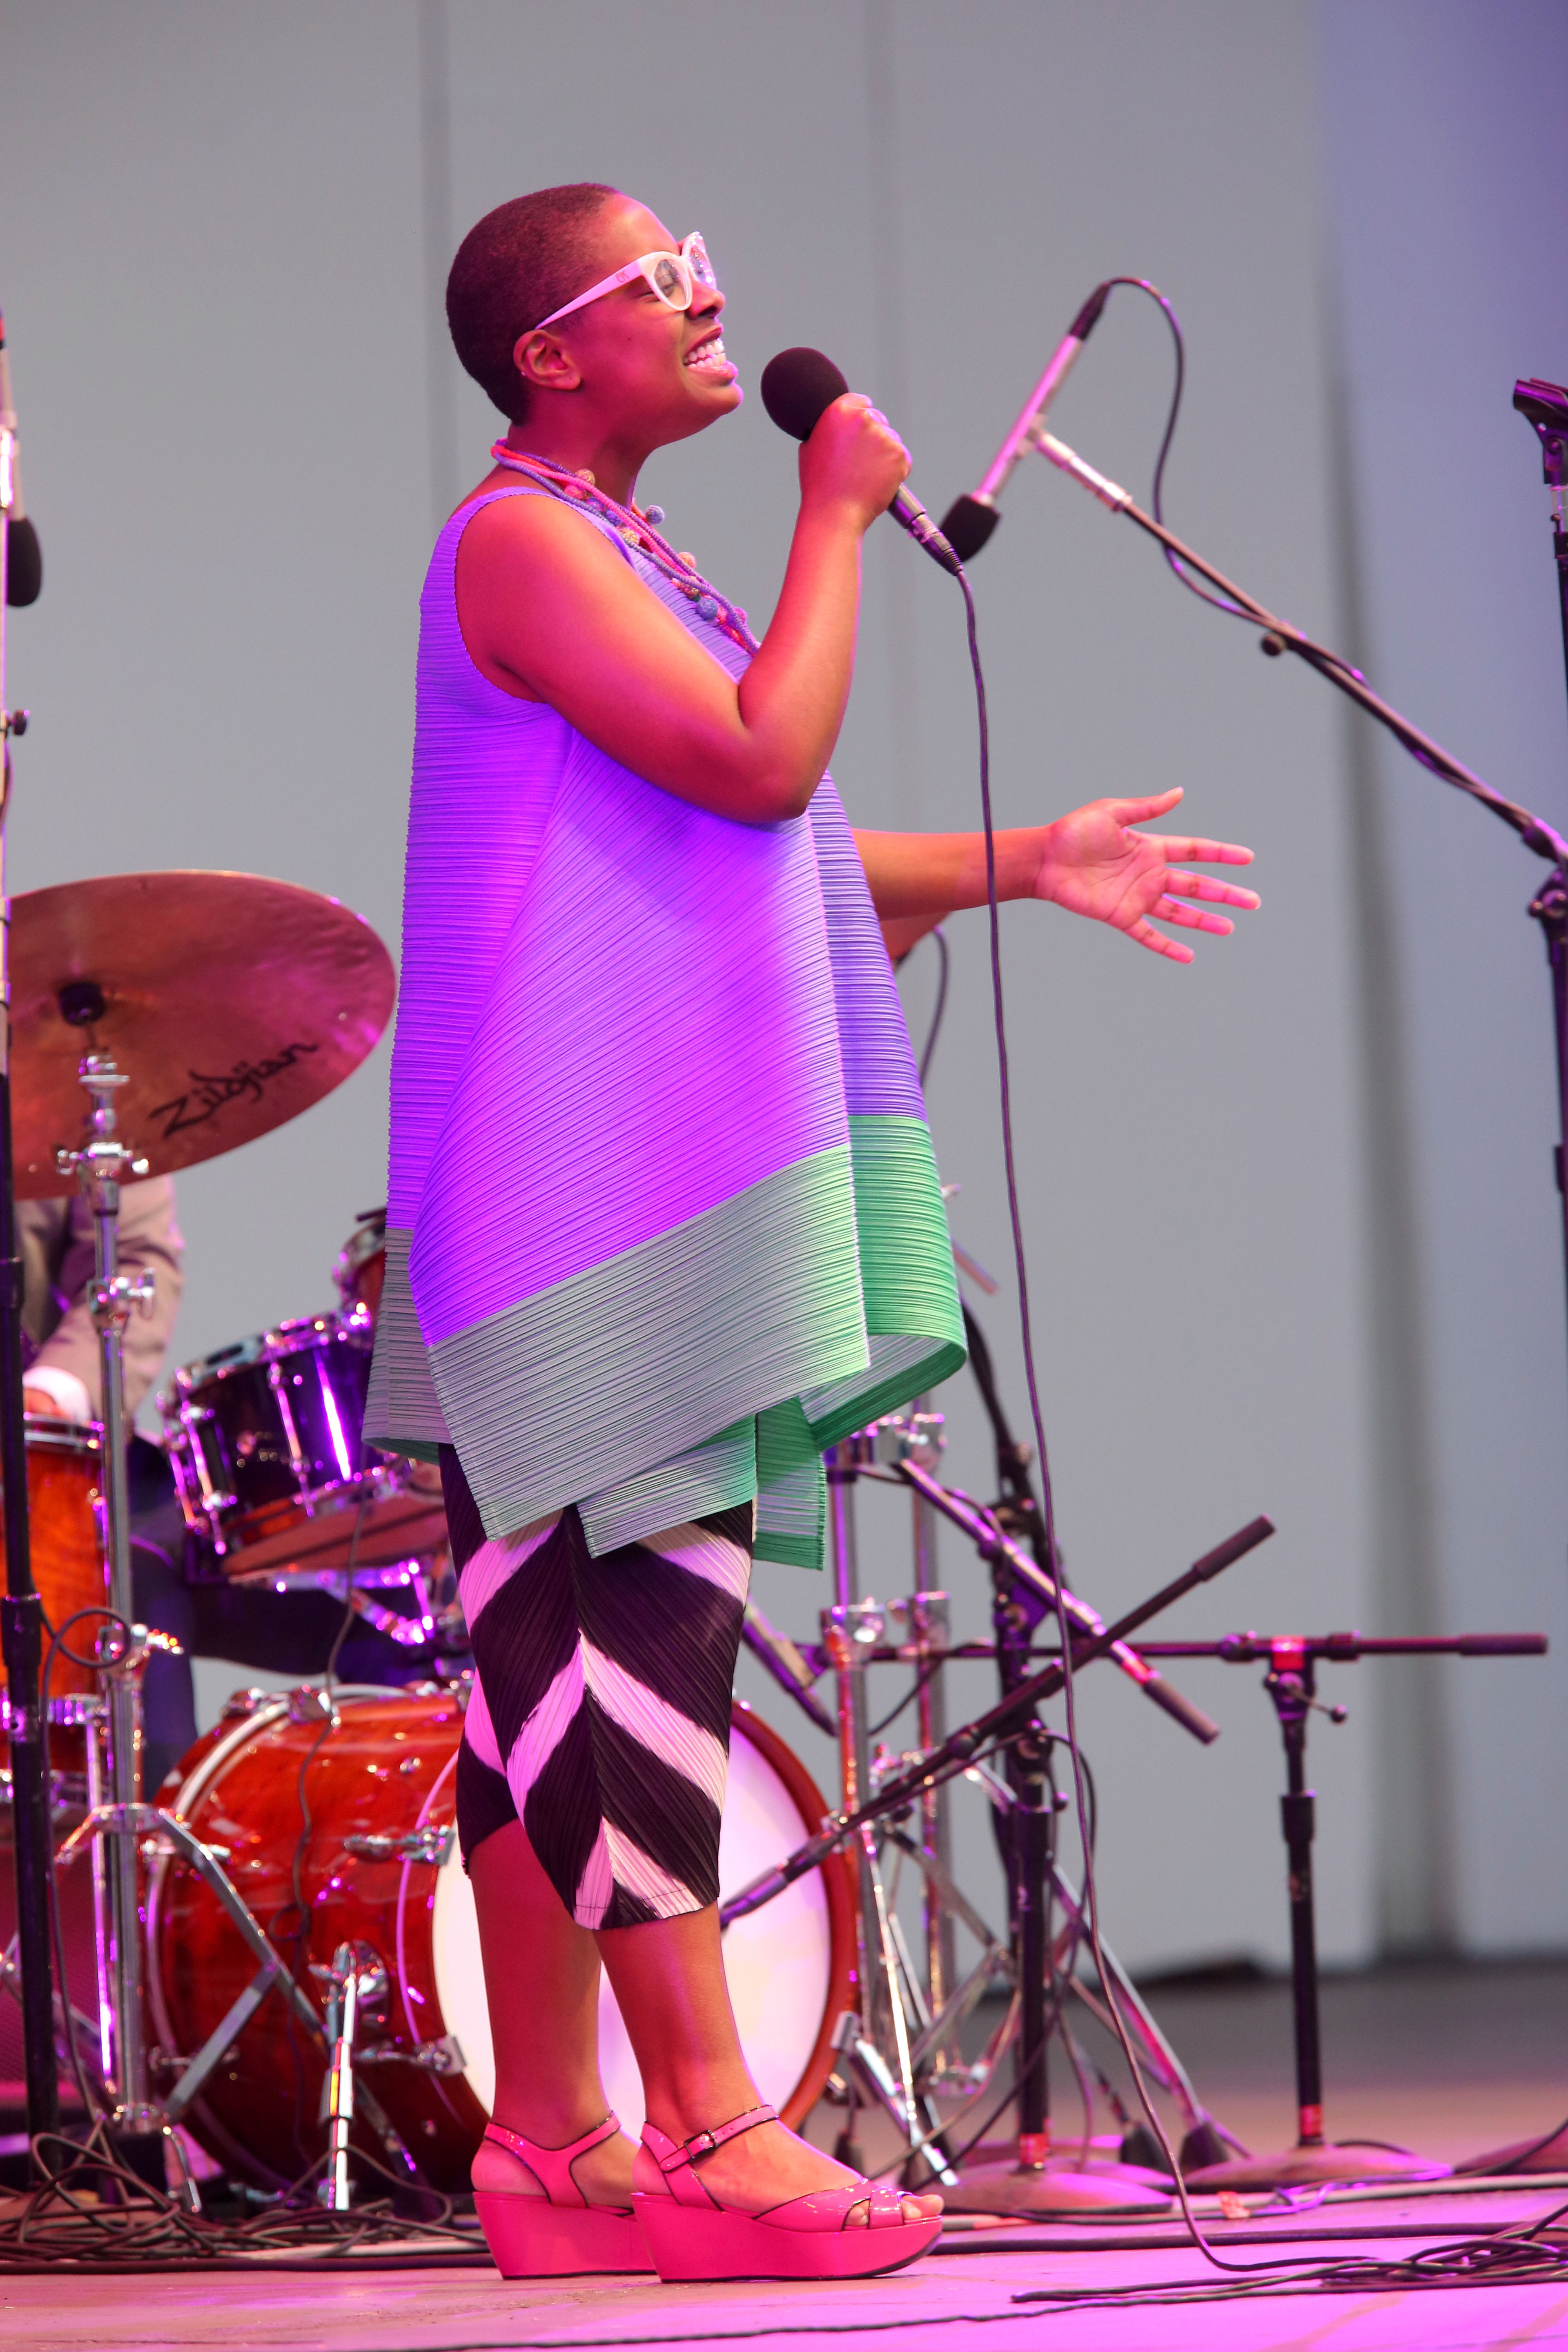 HOLLYWOOD, CA - JUNE 11: Vocalist Cecile McLorin Salvant performs onstage at the Hollywood Bowl Presents the 38th Anniversary Playboy Jazz Festival Day 1 at the Hollywood Bowl on June 11, 2016 in Hollywood, California. (Photo by Mathew Imaging/WireImage) *** Local Caption *** Cecile McLorin Salvant